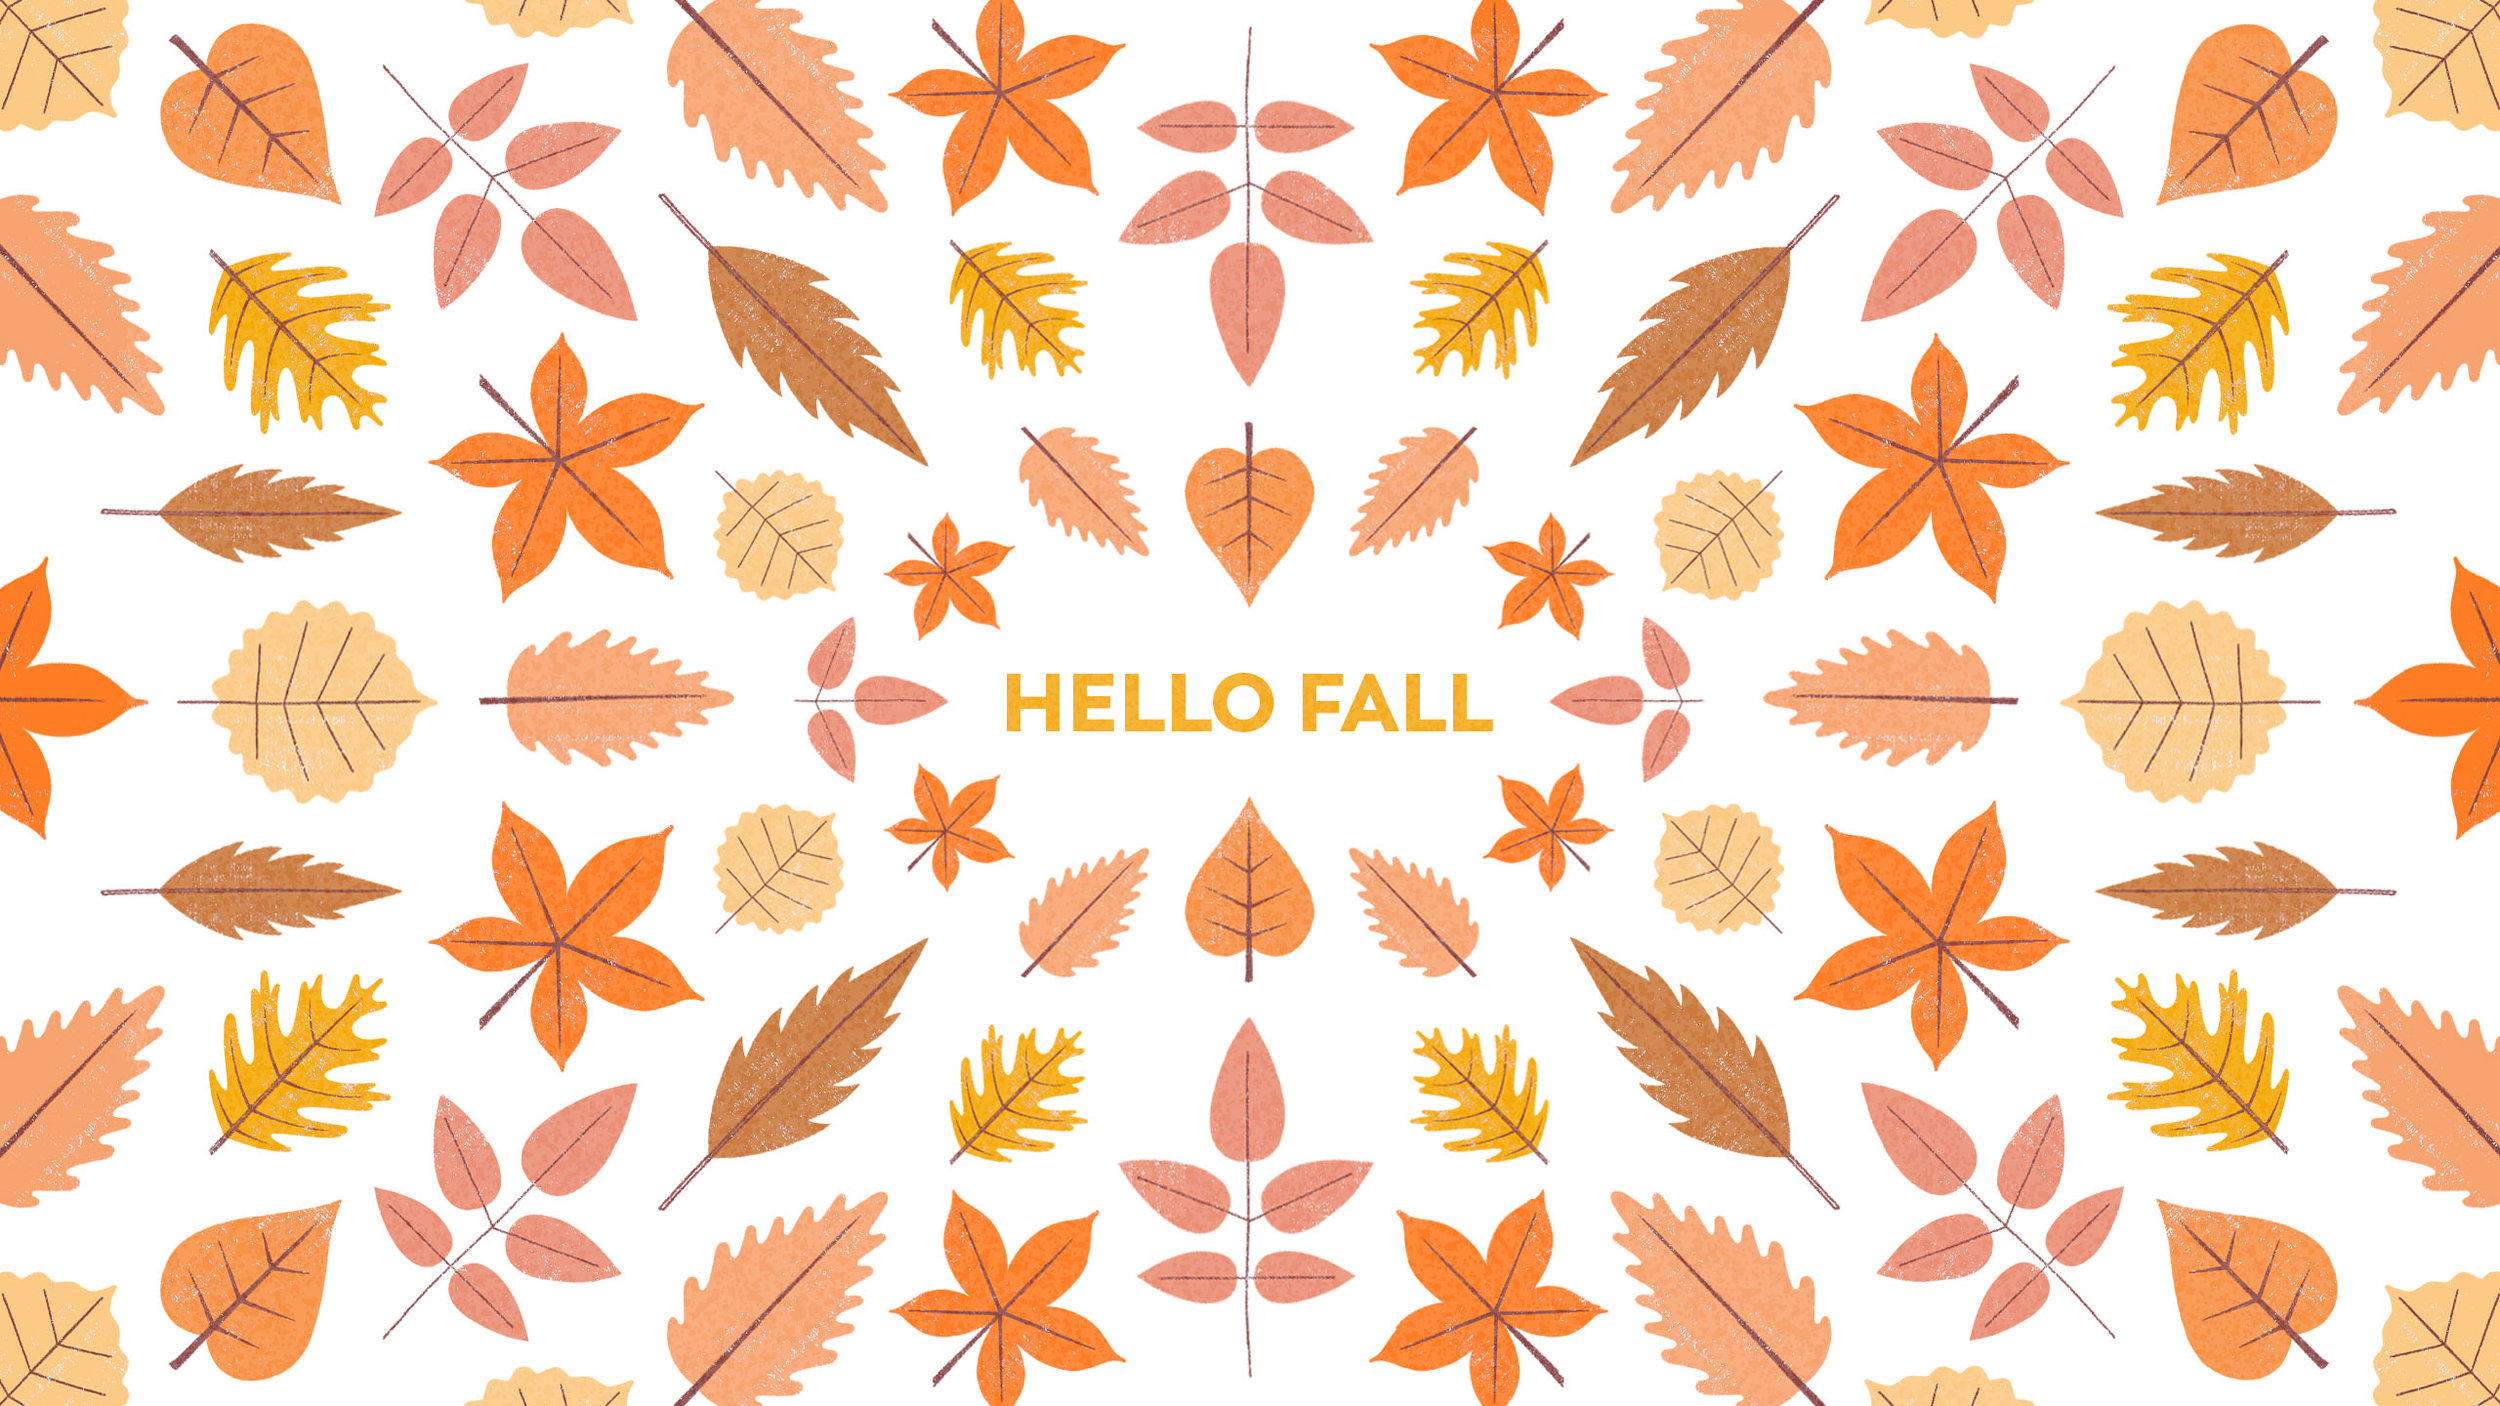 fall digital wallpaper.jpg